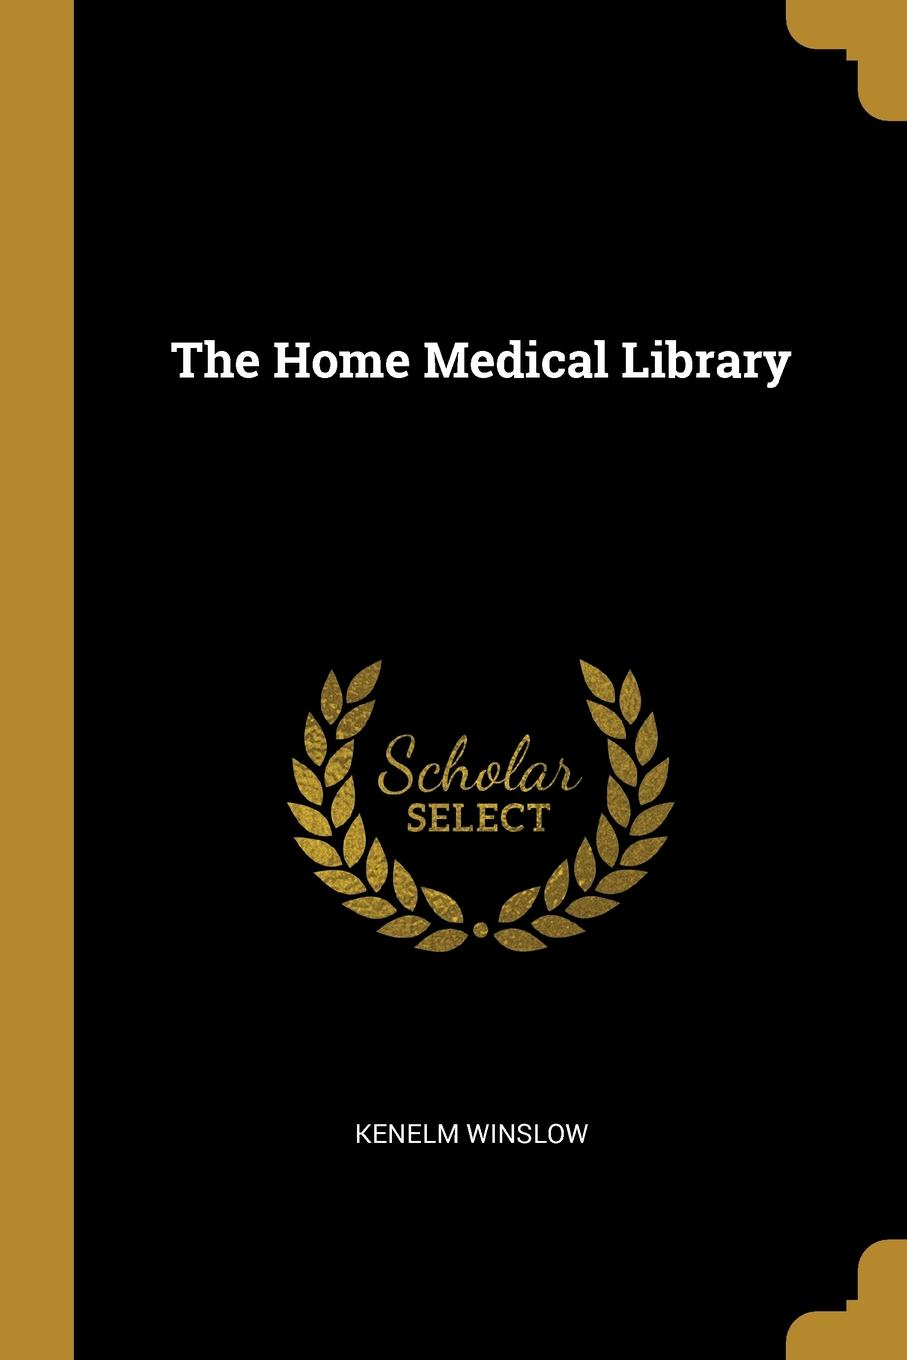 Kenelm Winslow The Home Medical Library